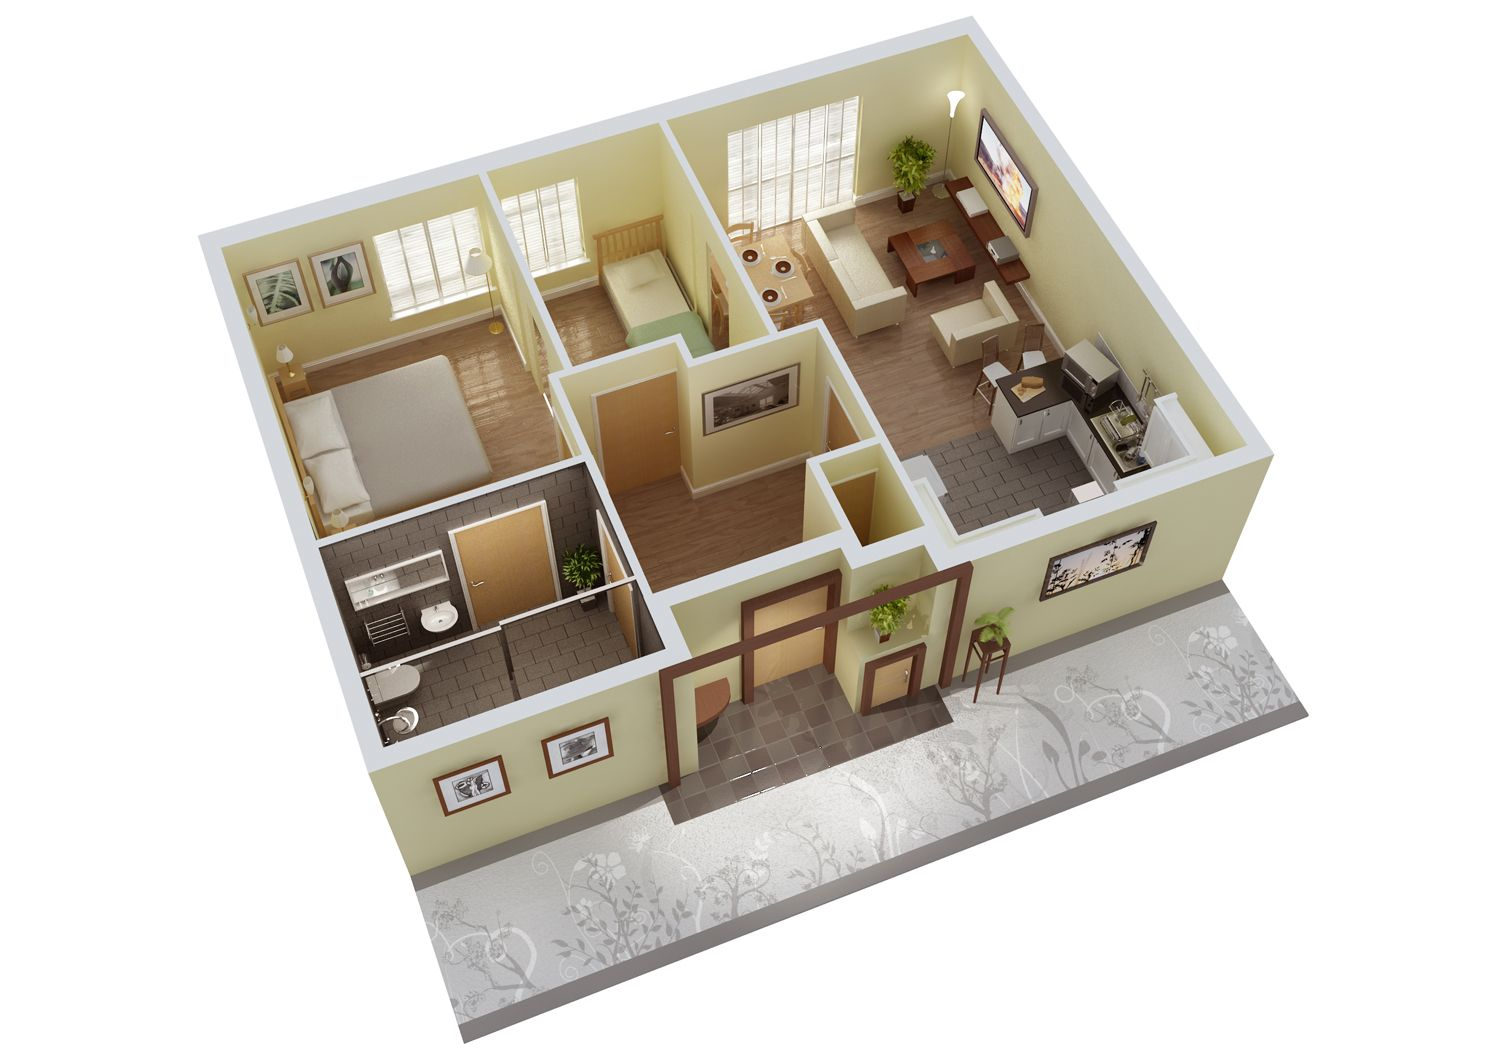 House layout design